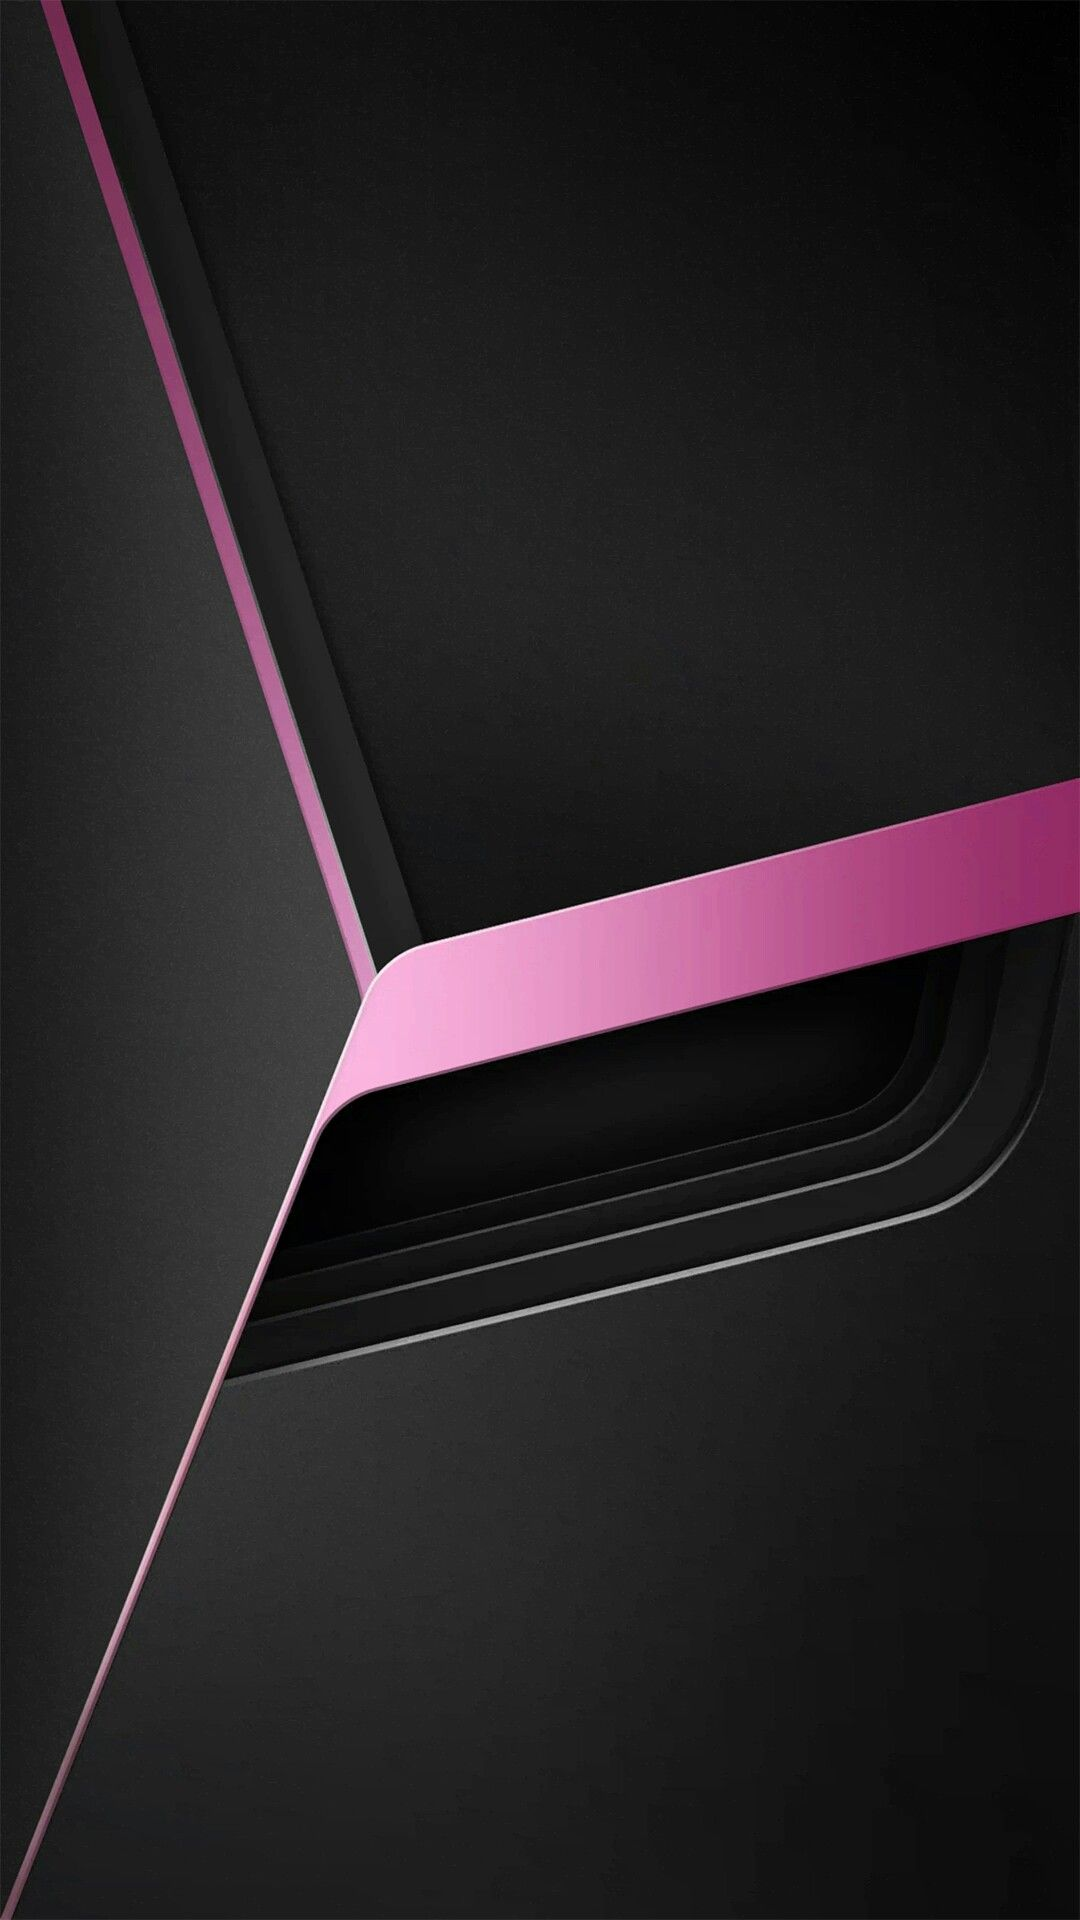 Black With Pink Abstract Wallpaper Abstract Wallpaper Pink Abstract Wallpaper Striped Wallpaper Background